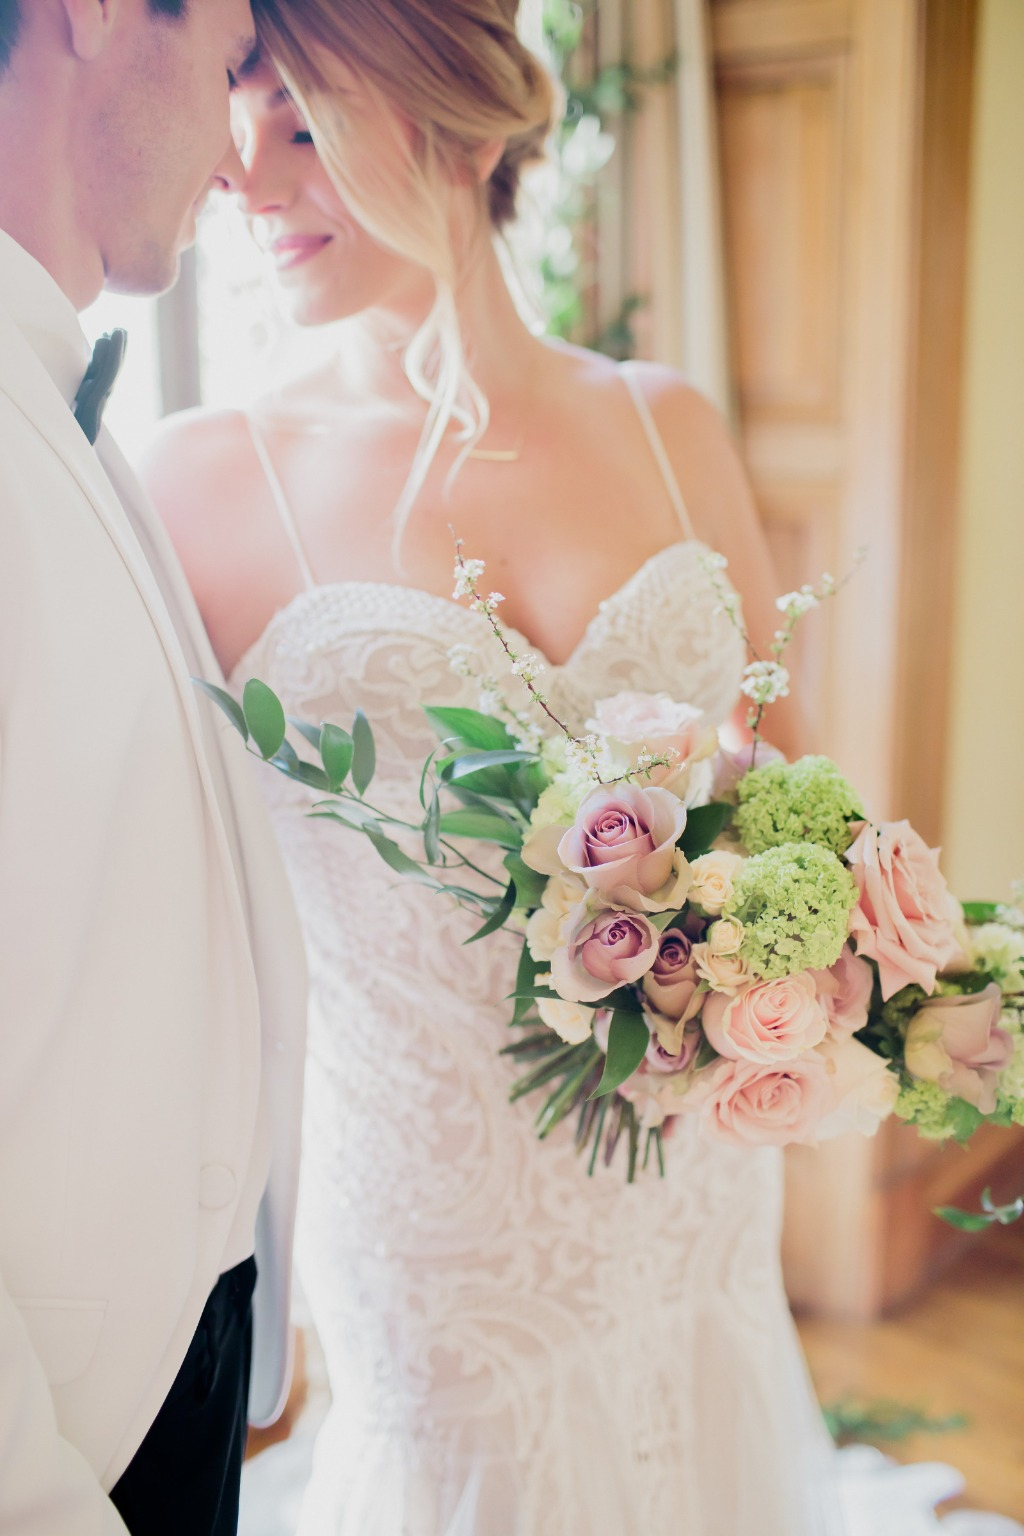 We're loving the fresh, clean look on this gorgeous bridal bouquet, with its soft, romantic roses and beautiful pops of green. Photography